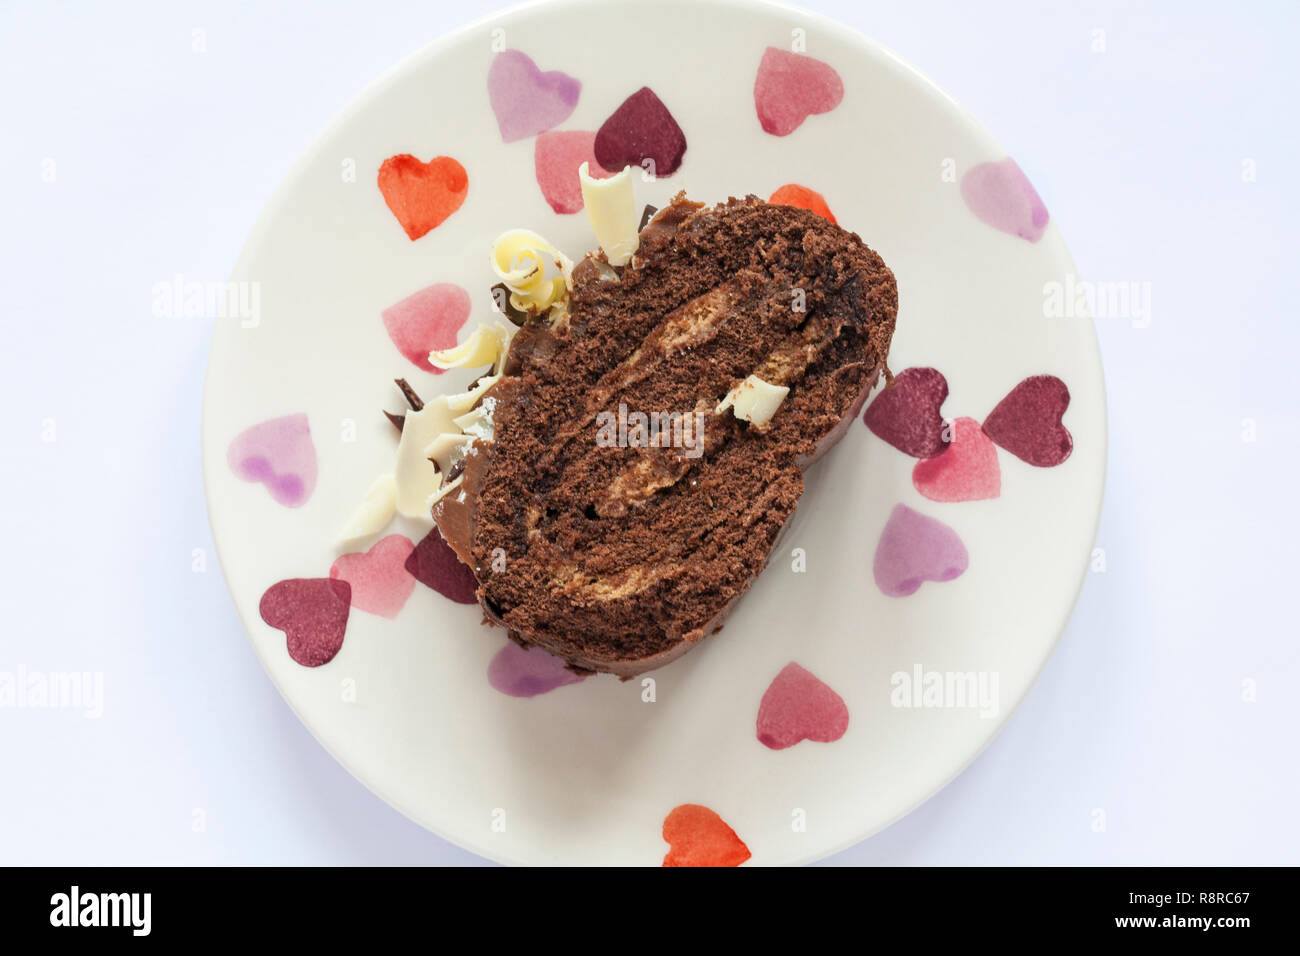 Slice of M&S Yuletide Log on plate - from above looking down on - Stock Image